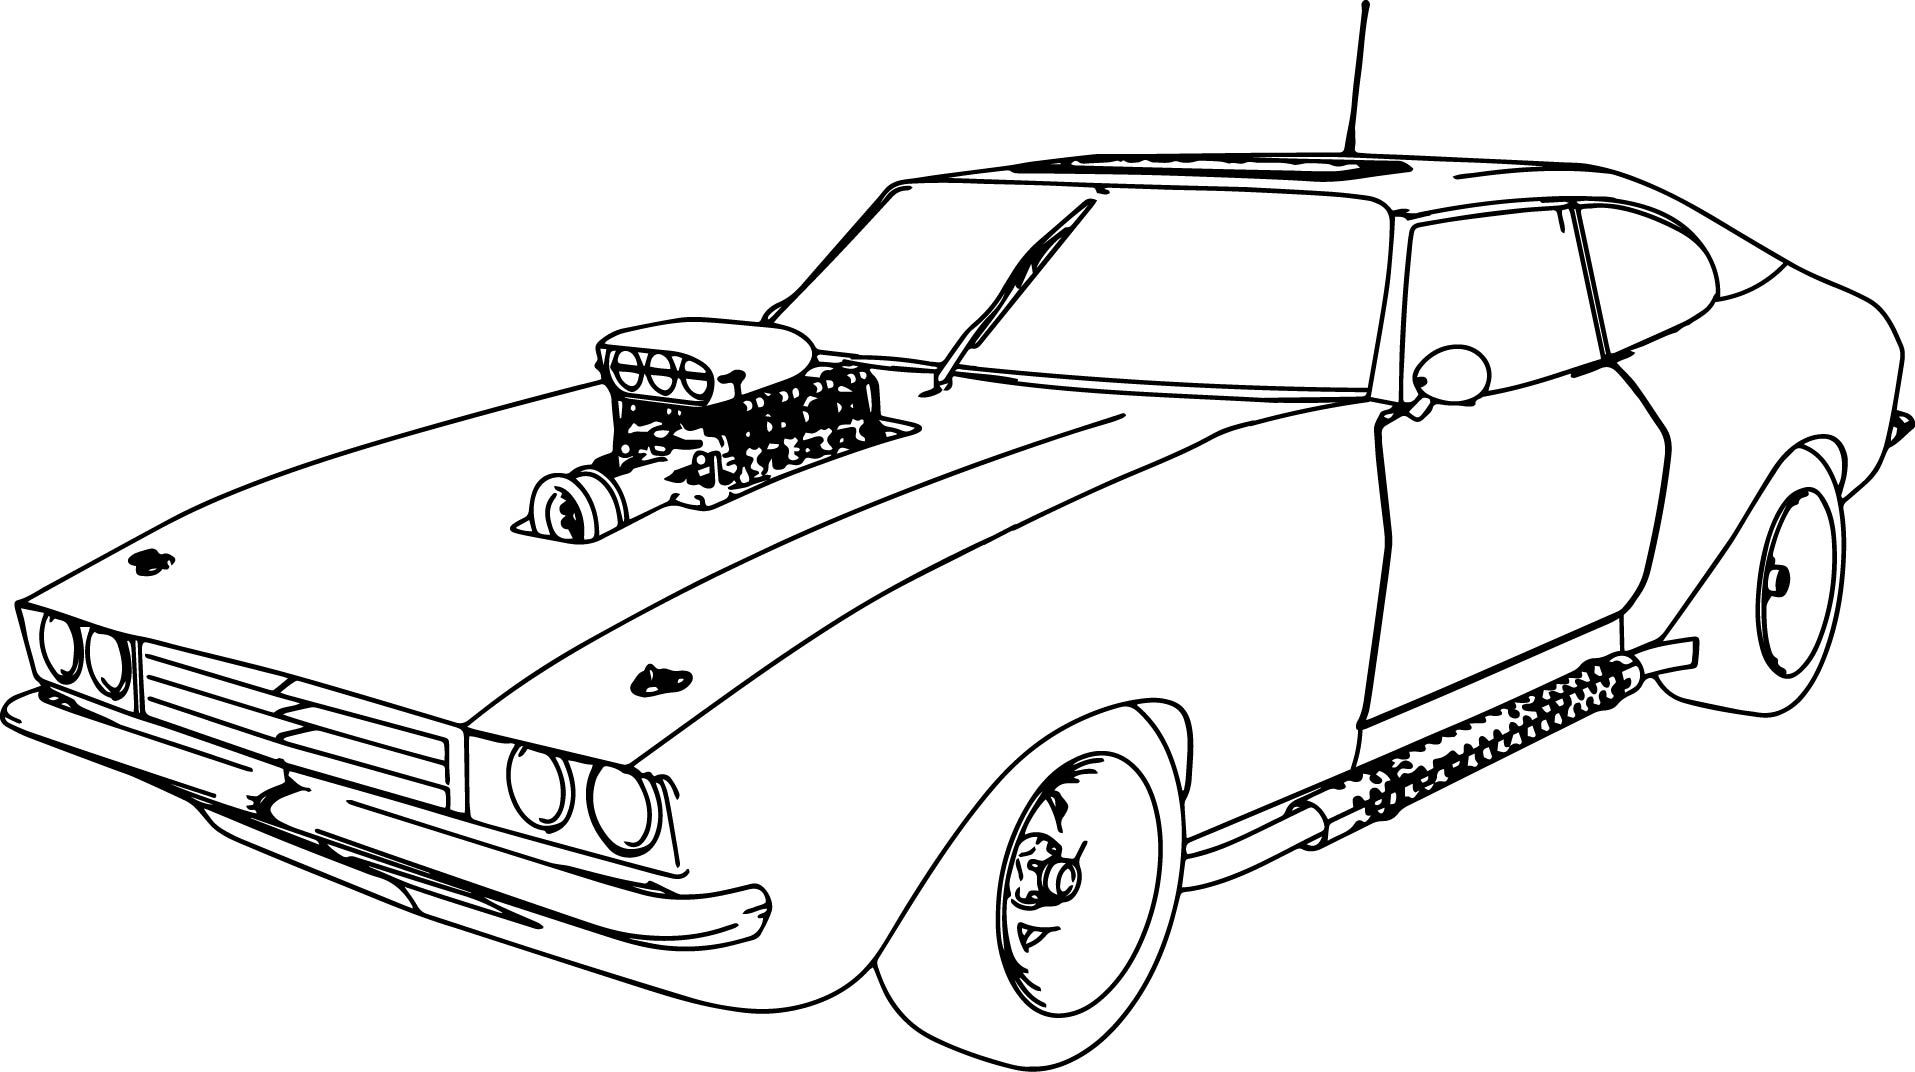 1915x1072 Muscle Car Coloring Pages Printable Of Muscle Car Coloring Pages